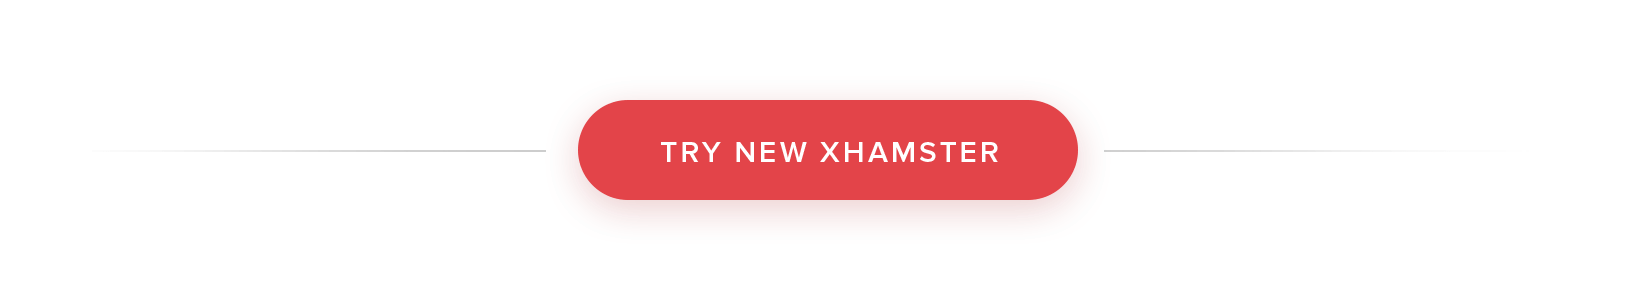 xHamster Reveals New Web Design for Public Testing